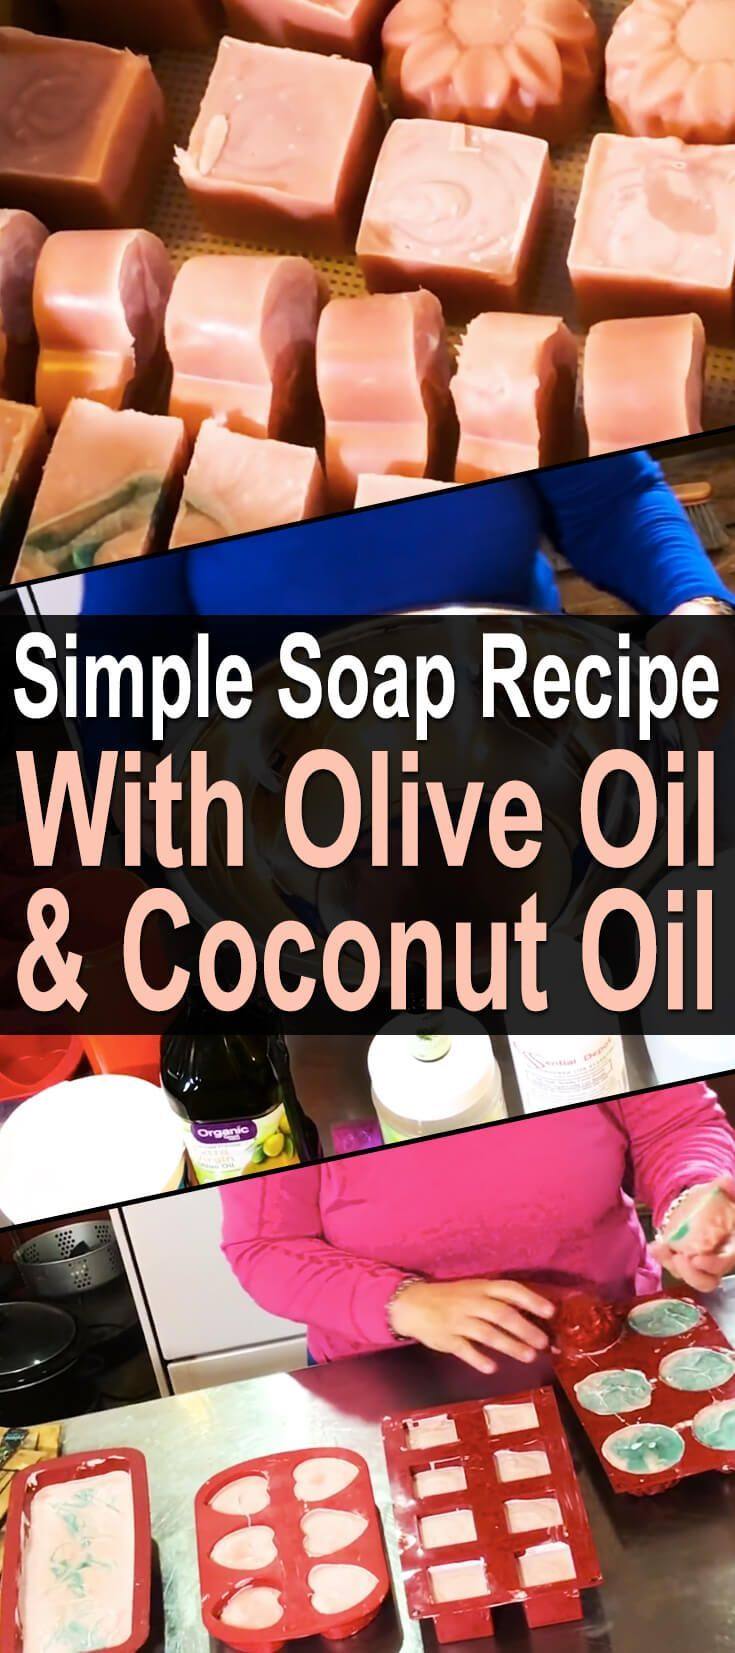 Simple Soap Recipe With Olive Oil. Nowadays, even basic bar soap is full of strange, caustic chemicals and perfumes. I don't need any of that. I just need something that will clean my skin and leave it feeling nice and soft. Something made with coconut or olive oil, perhaps... or both! Which is why I love this soap recipe. #Homesteadsurvivalsite #Soaprecipe #DIY #Oliveoil